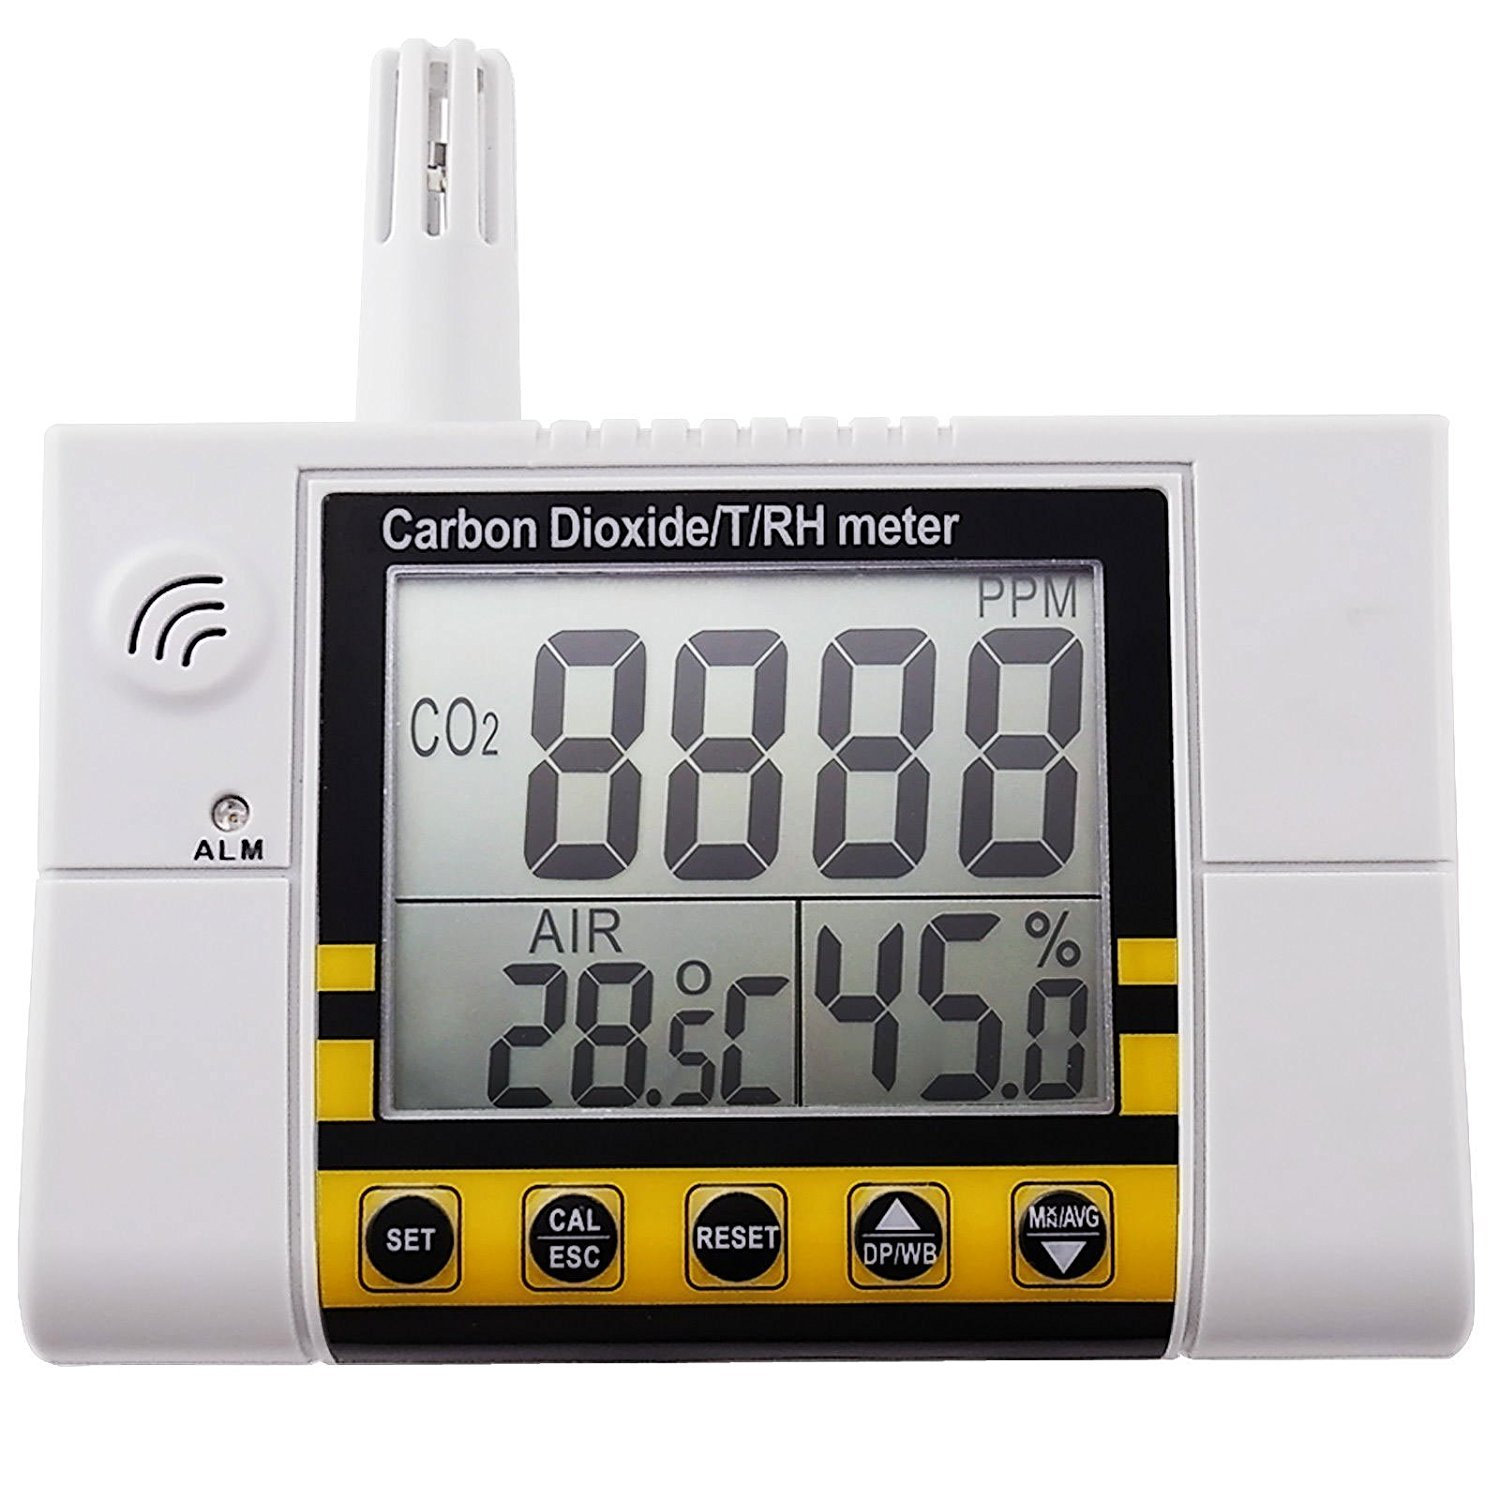 Carbon Dioxide/ Temperature/ Humidity Air Quality Monitor Meter,Wall Mountable CO2 Detector , RH Indoor Air Quality IAQ Sensor, 0~2000ppm Range